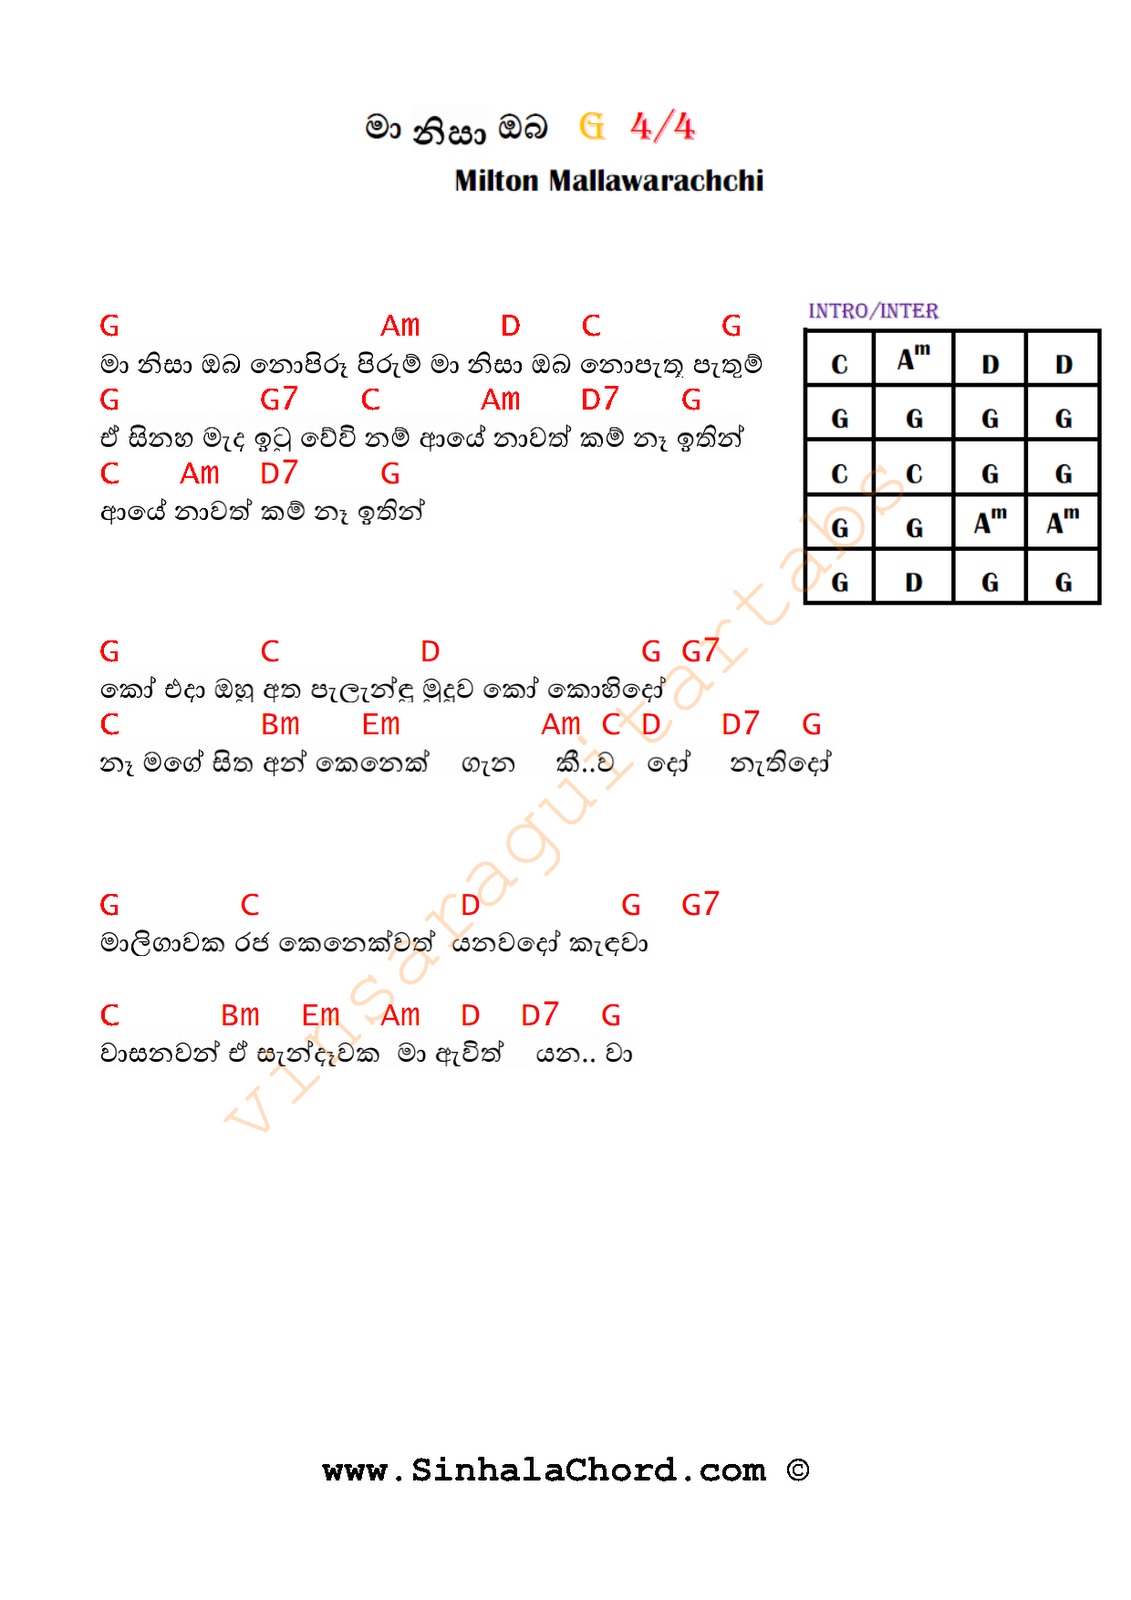 Ma nisa oba guitar chords sinhala guitar chordssinhala songs about milton mallawarachchi from wiki hexwebz Image collections